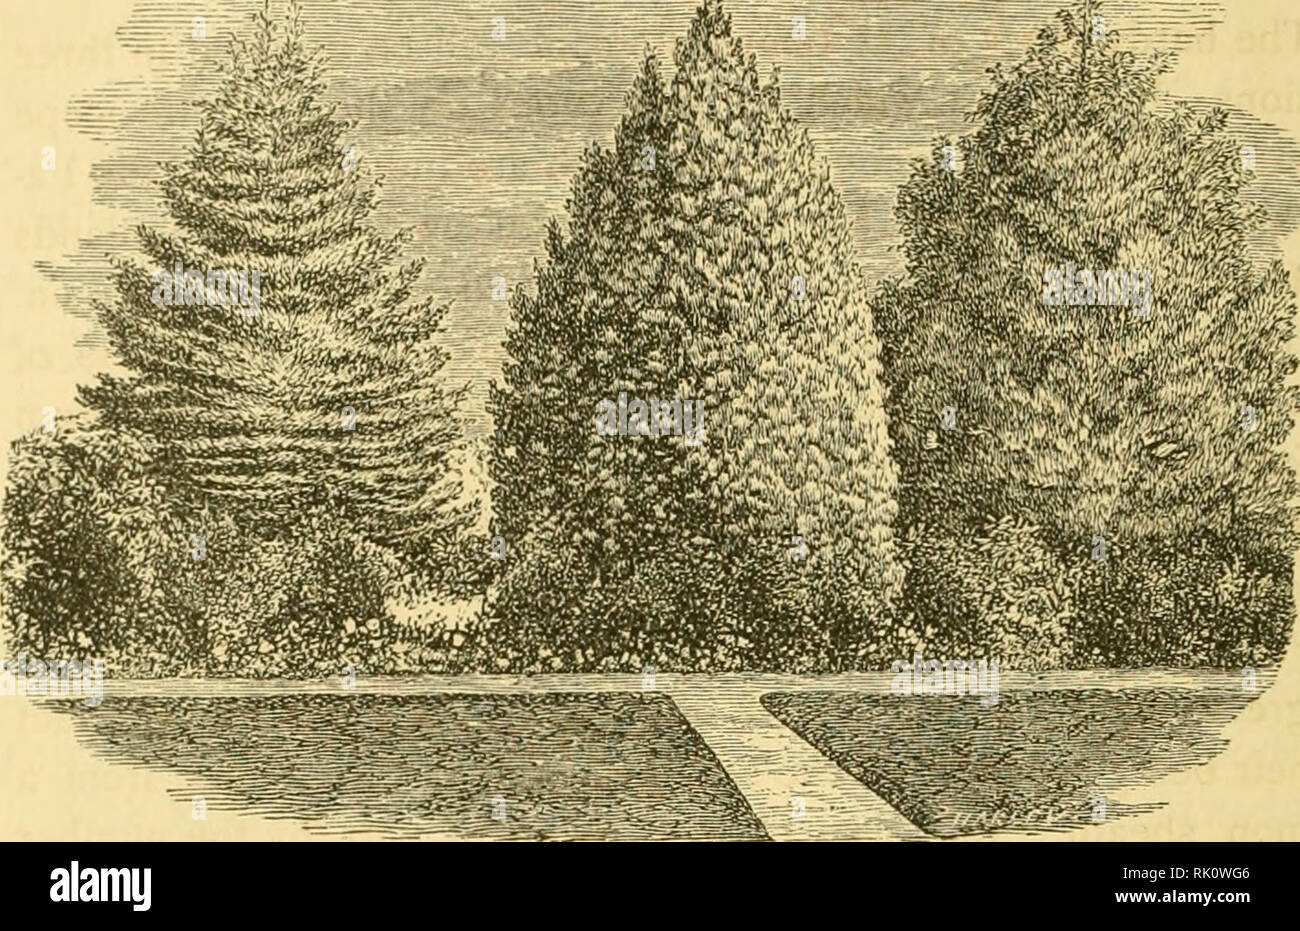 The Art Of Beautifying Suburban Home Grounds Of Small Extent Landscape Gardening Trees Chapter V Evergreen Trees And Shrubs Aving In The Chapter On The Characteristics Of Trees Pages 294 And